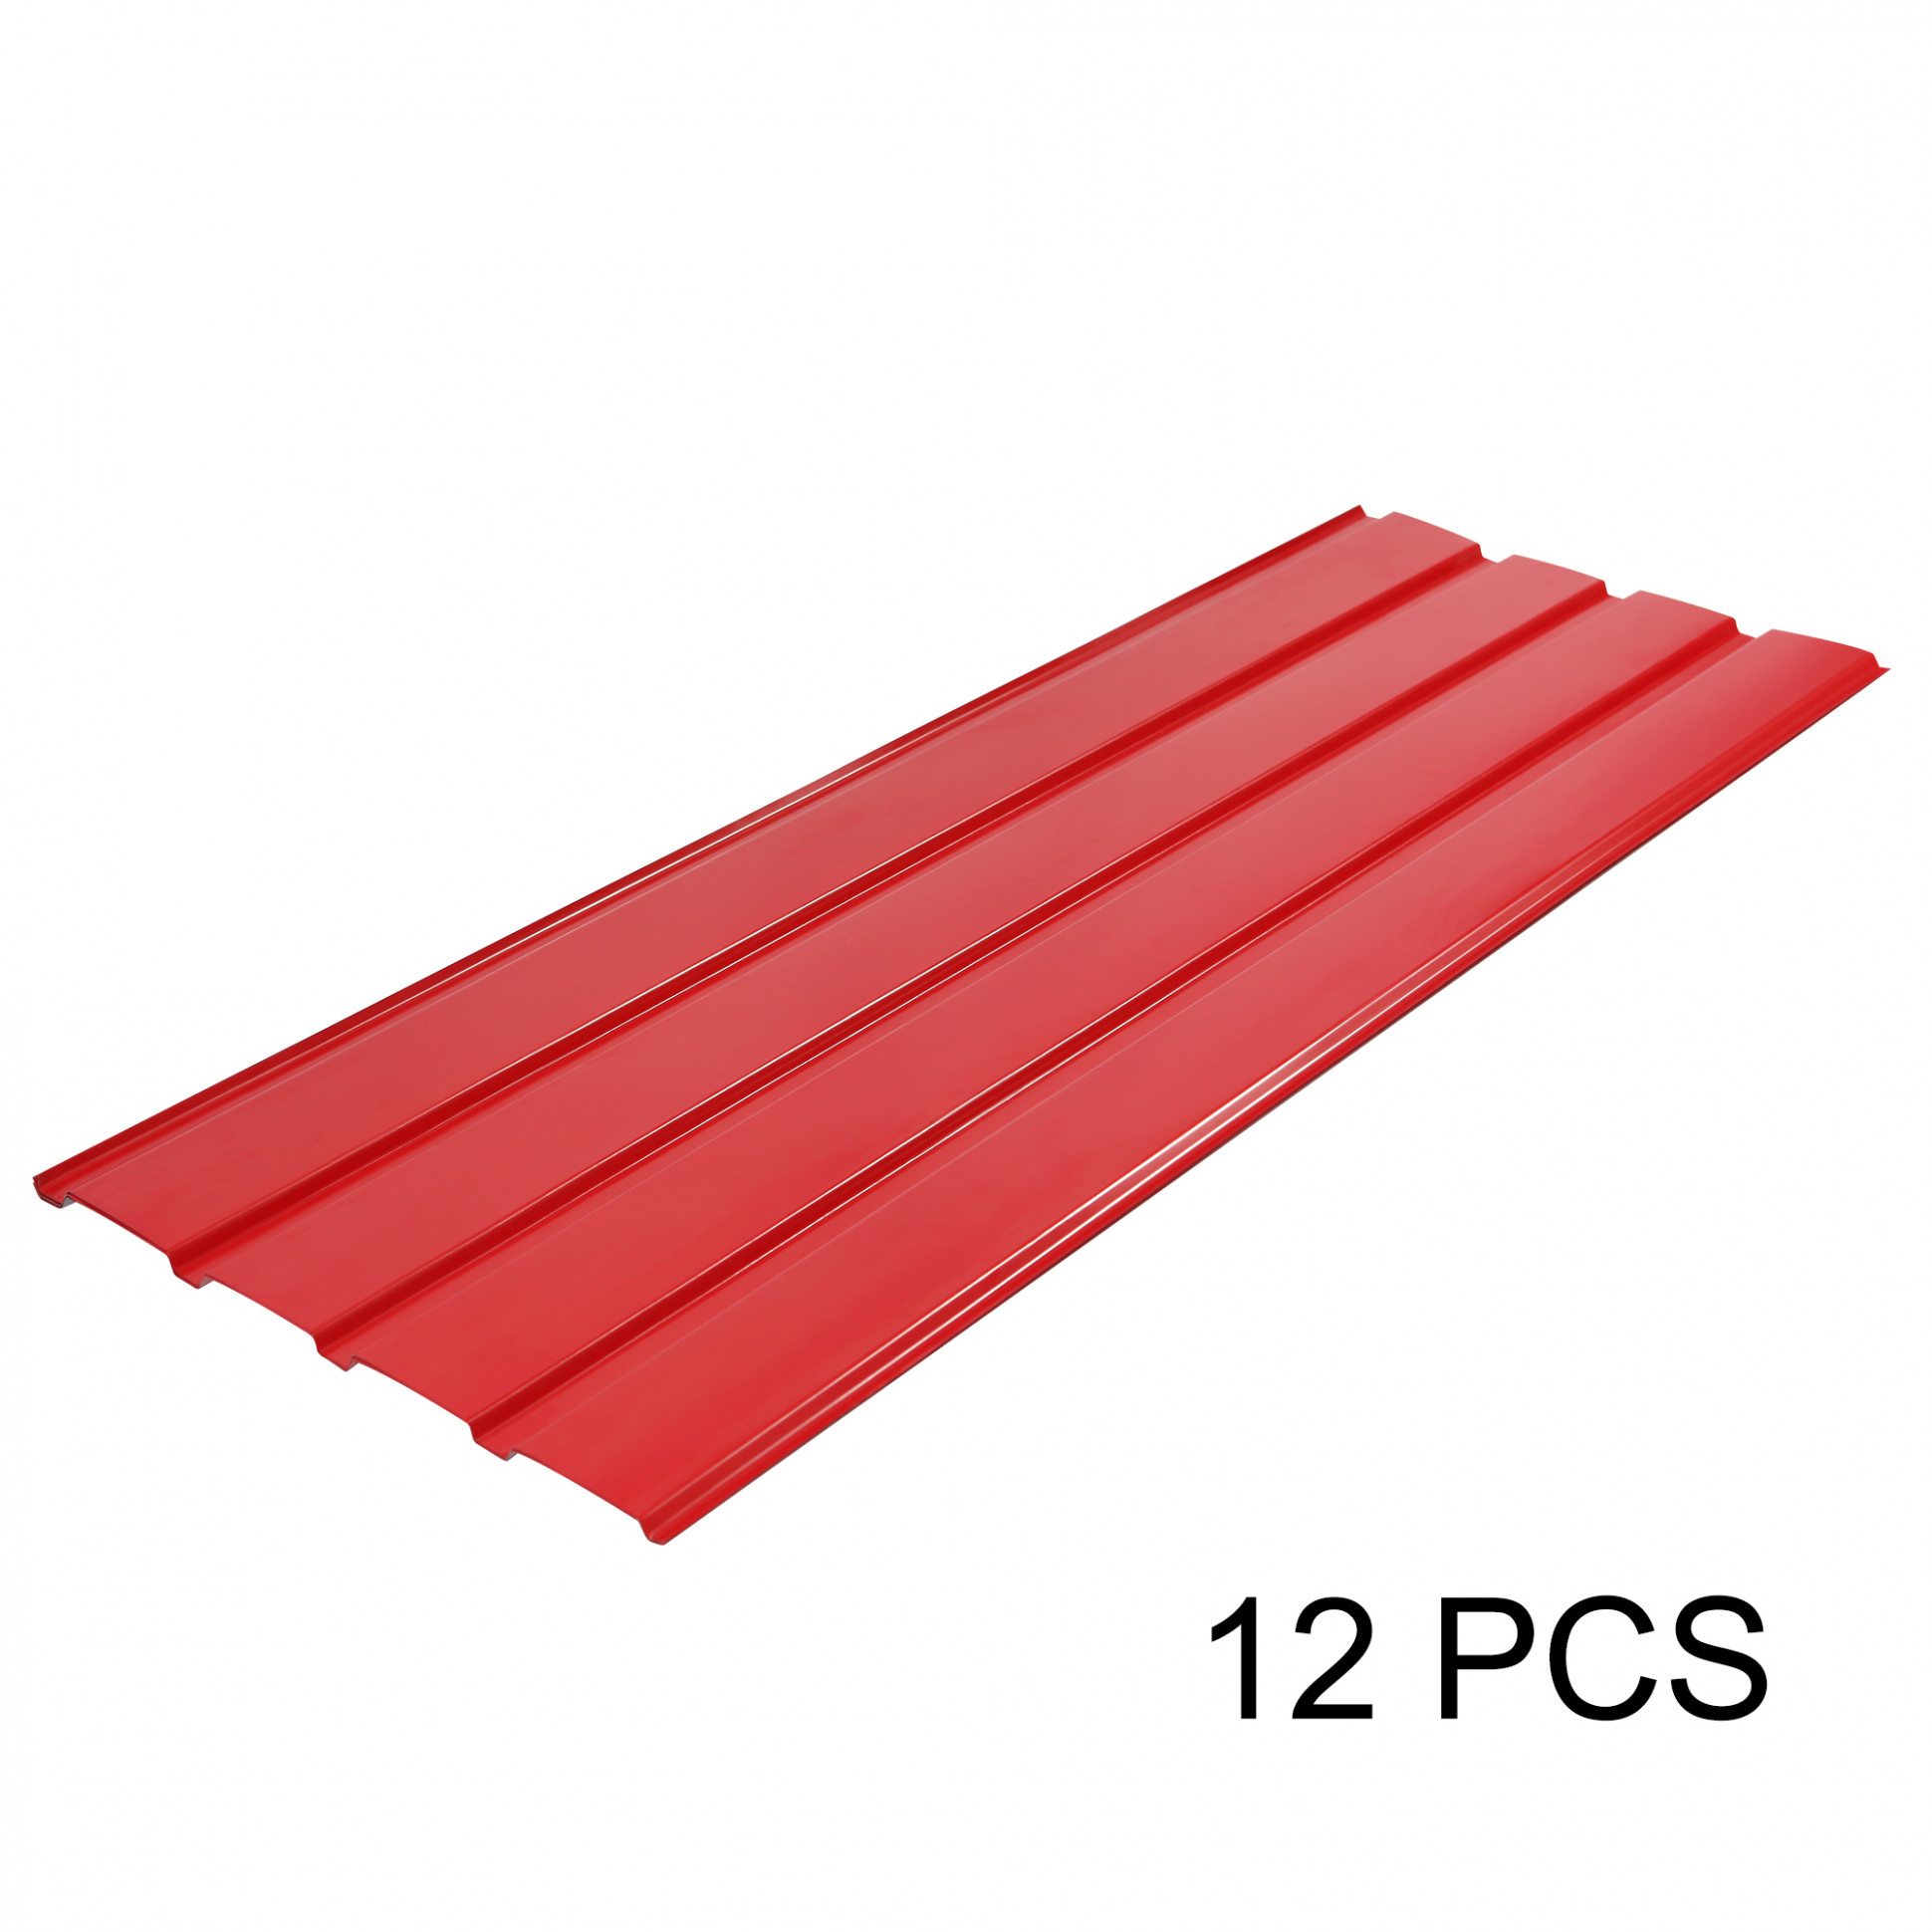 Details About 13 PCS Corrugated Roof Sheets Profile Galvanized Metal Roofing Carport Red Carport Roof Brackets